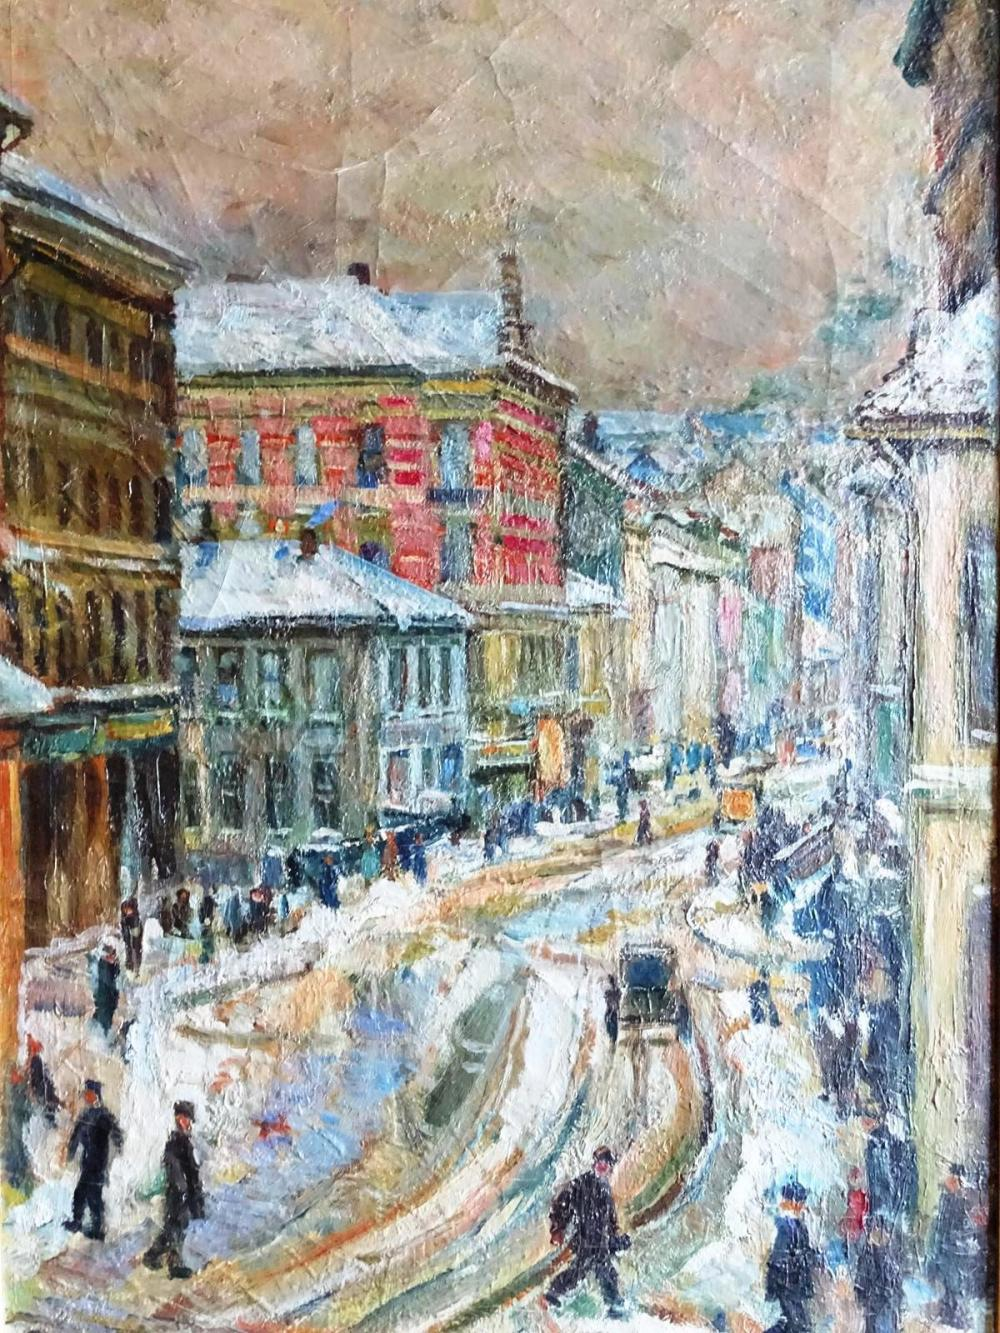 EARLY 20TH C. STREETSCAPE PAINTING